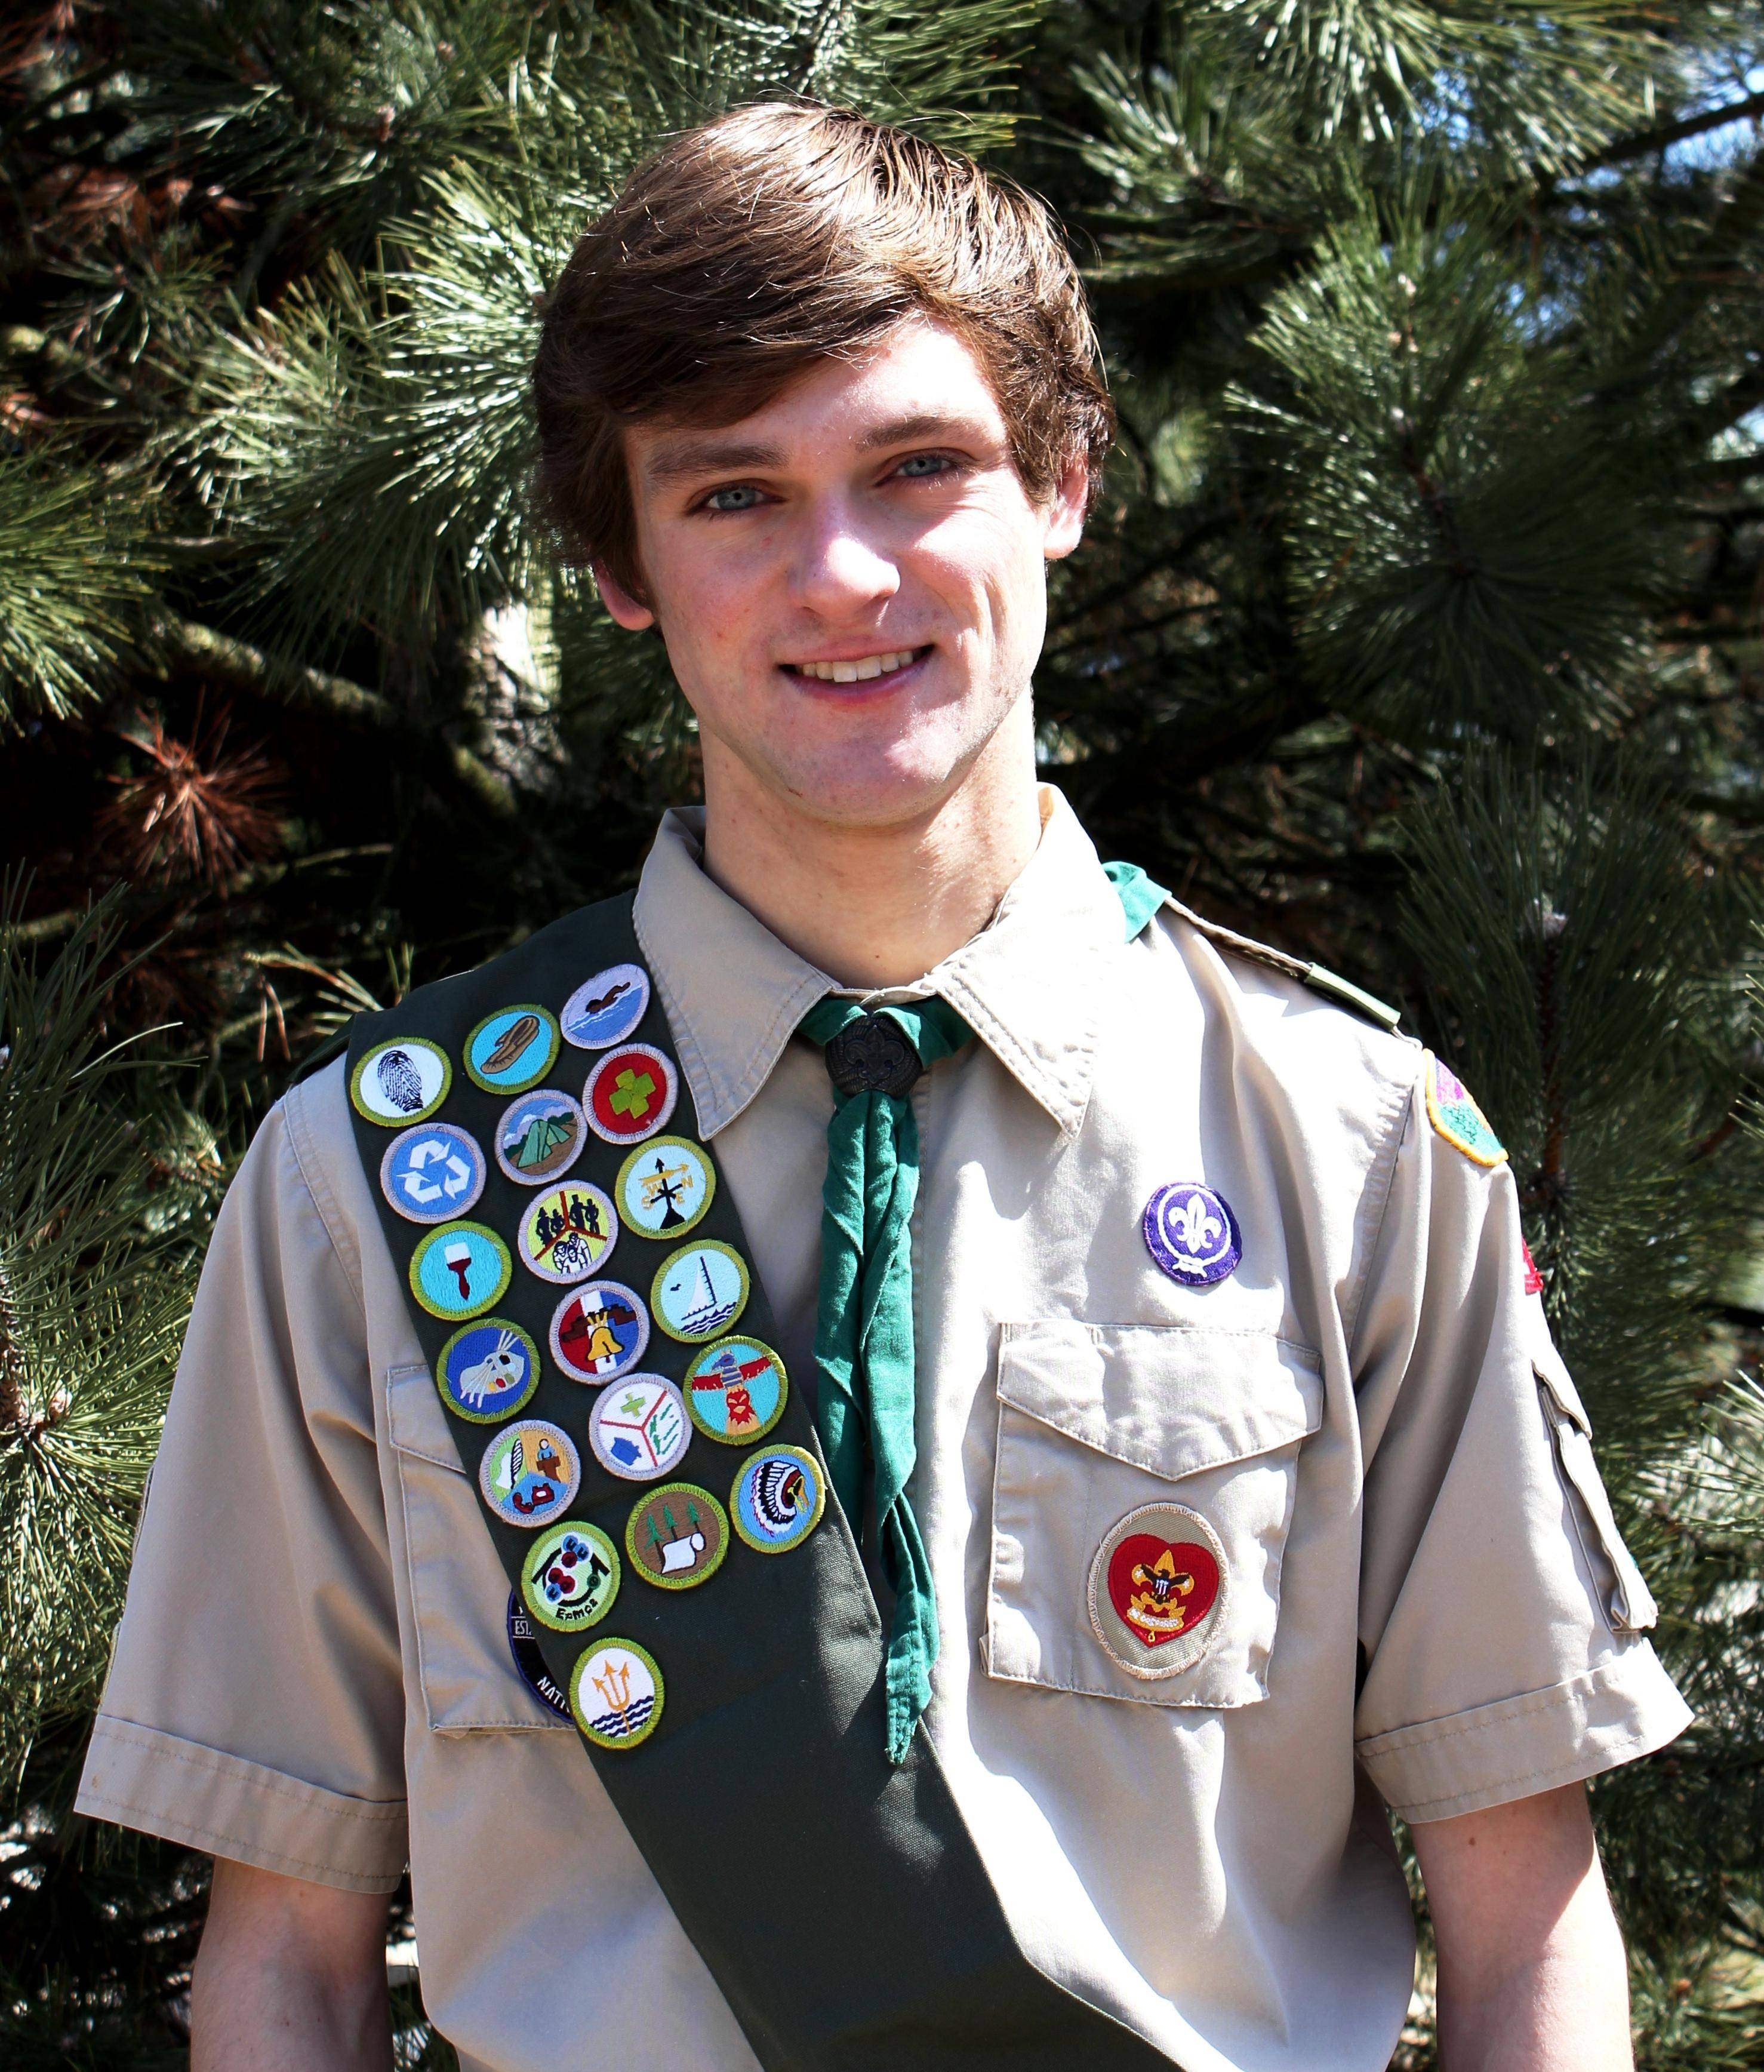 Scott Johnson of St. Patrick Boy Scout Troop 10 was named an Eagle Scout at the Court of Honor Ceremony May 4 at St. Patrick Catholic Church in St. Charles.